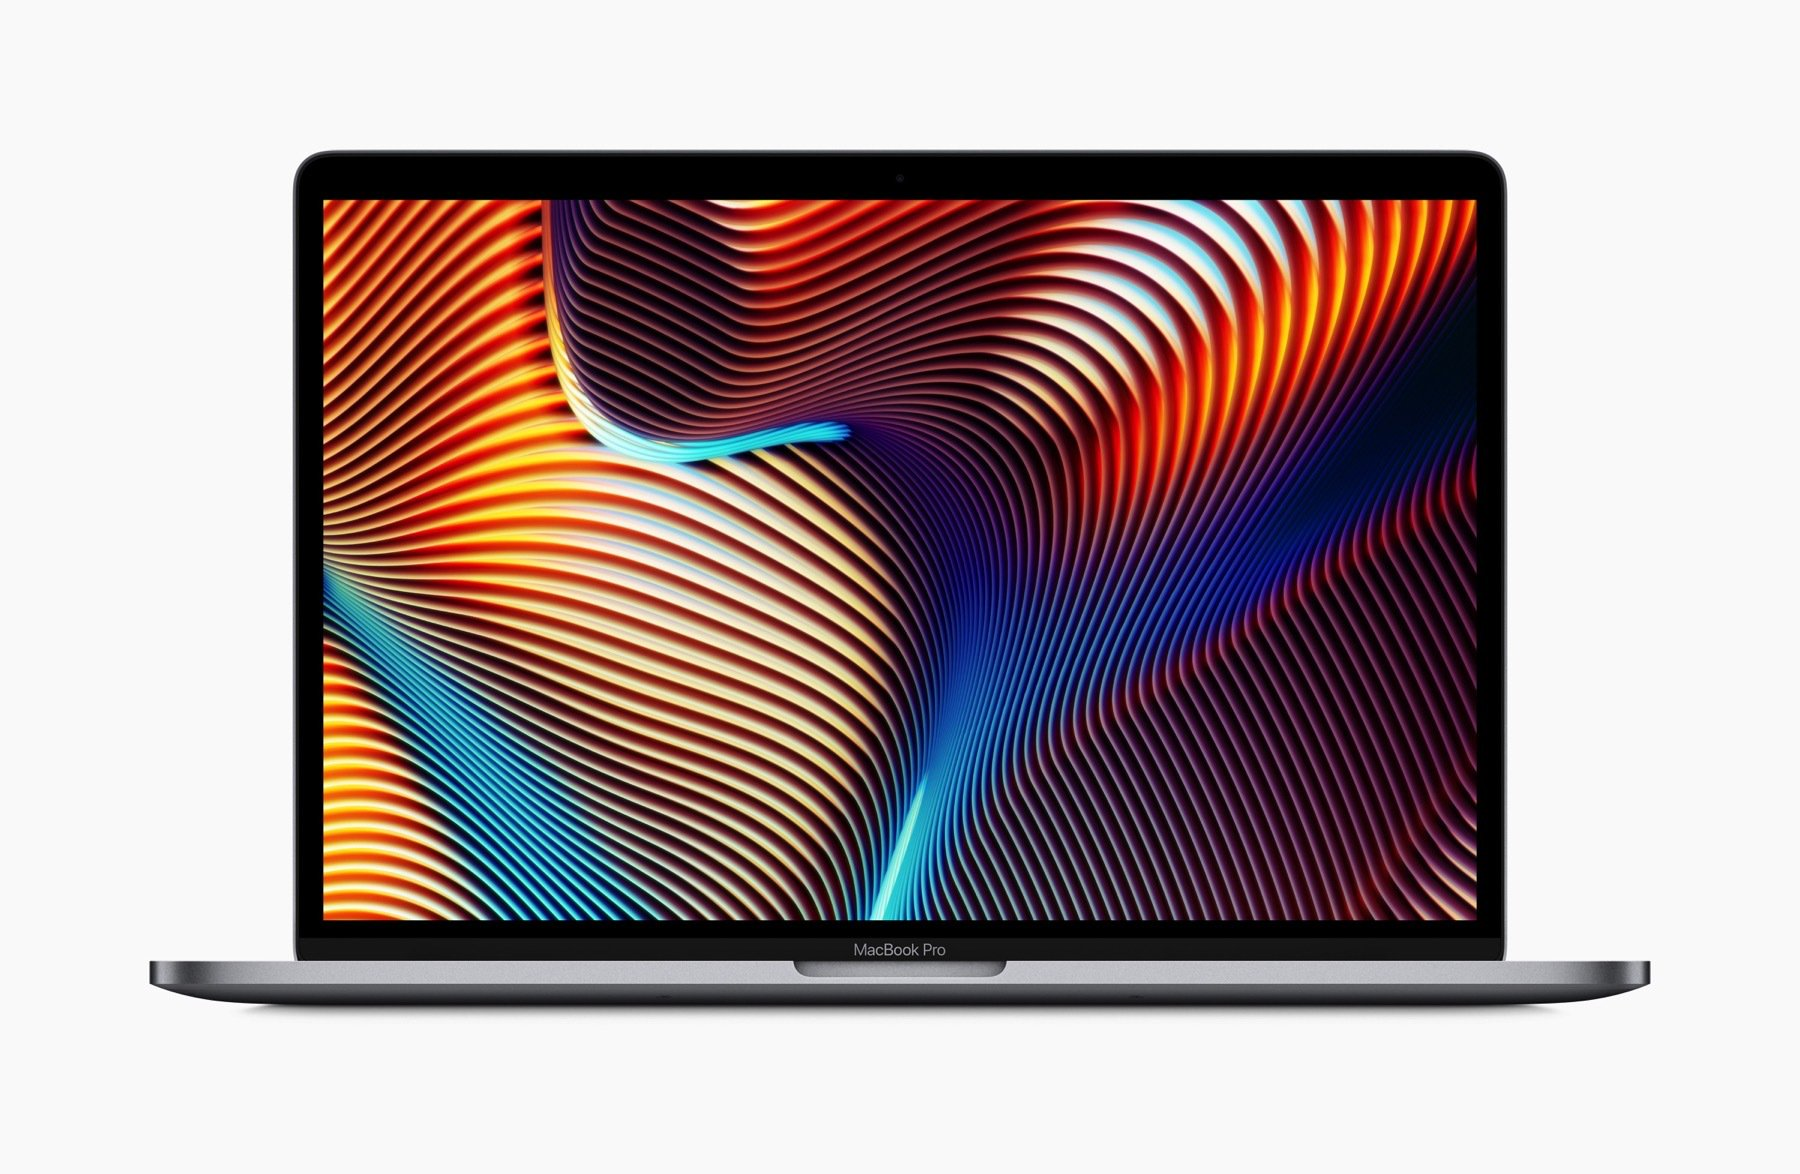 Итоги презентации Apple — представлены новые iPad Pro, MacBook Air и Mac mini